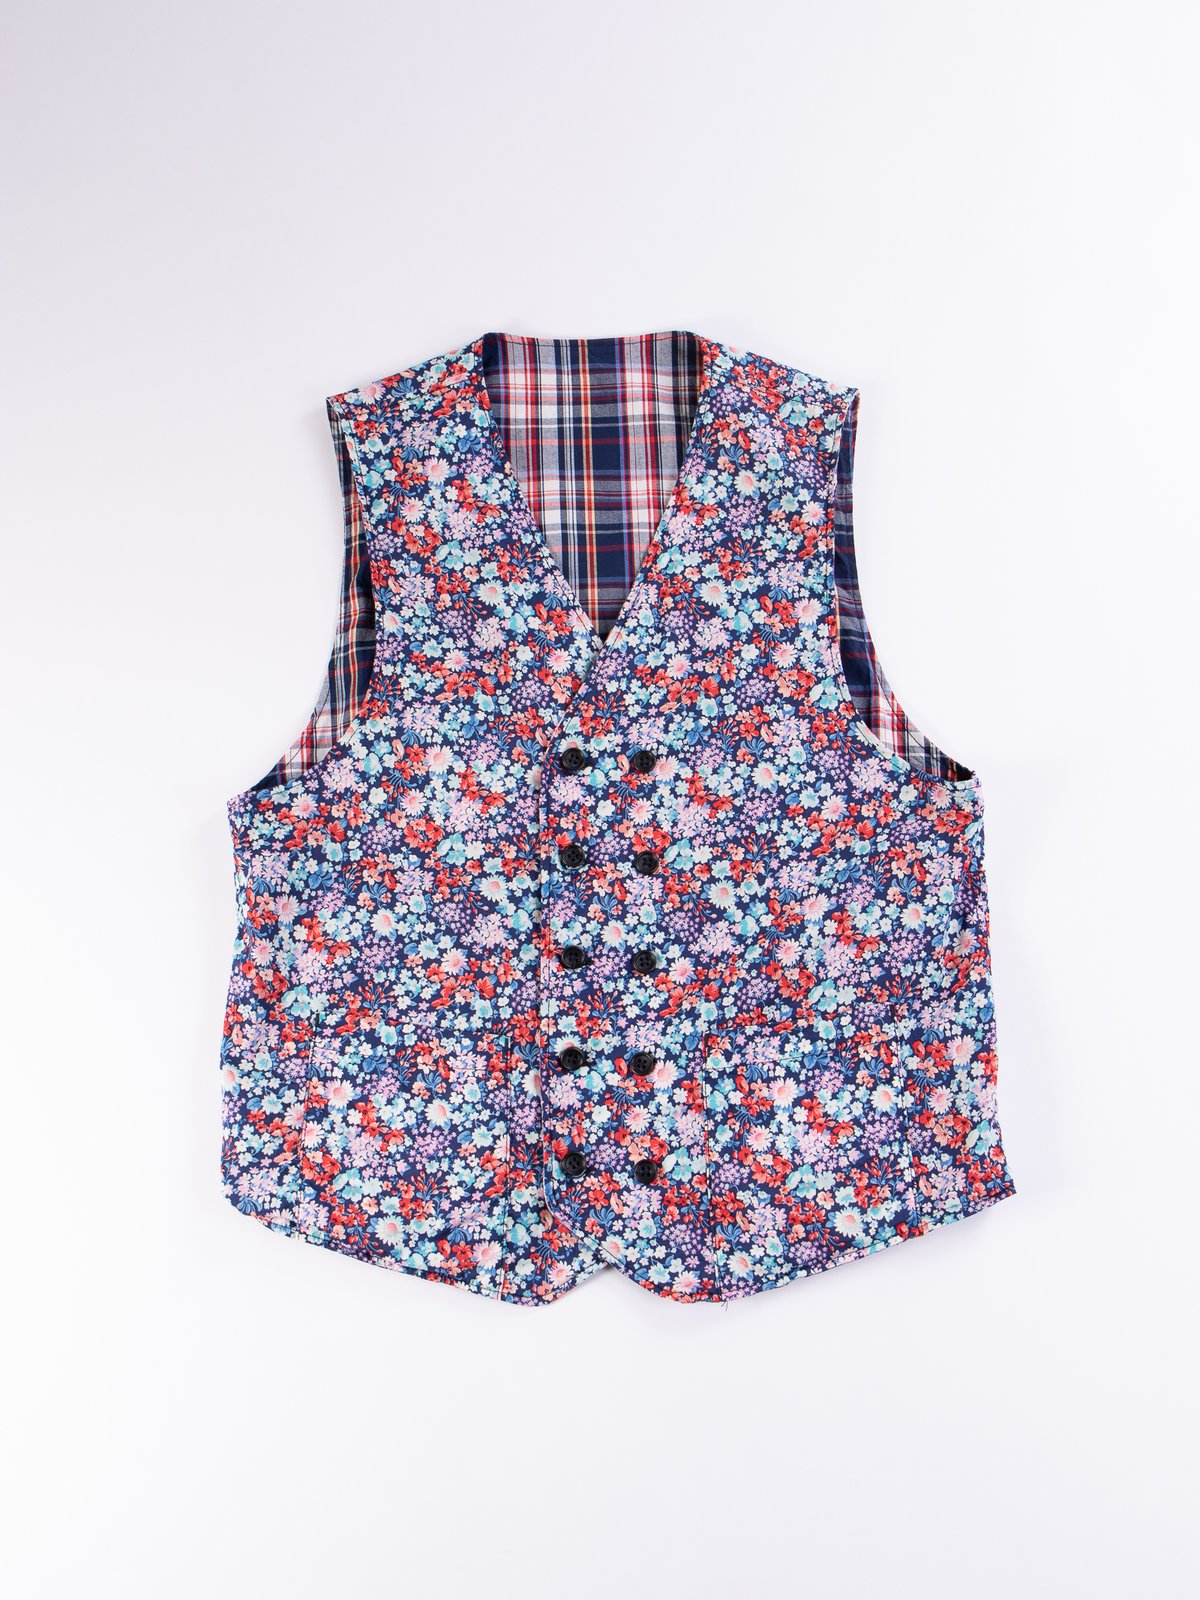 Navy/White/Red Plaid Poplin Reversible Vest - Image 6